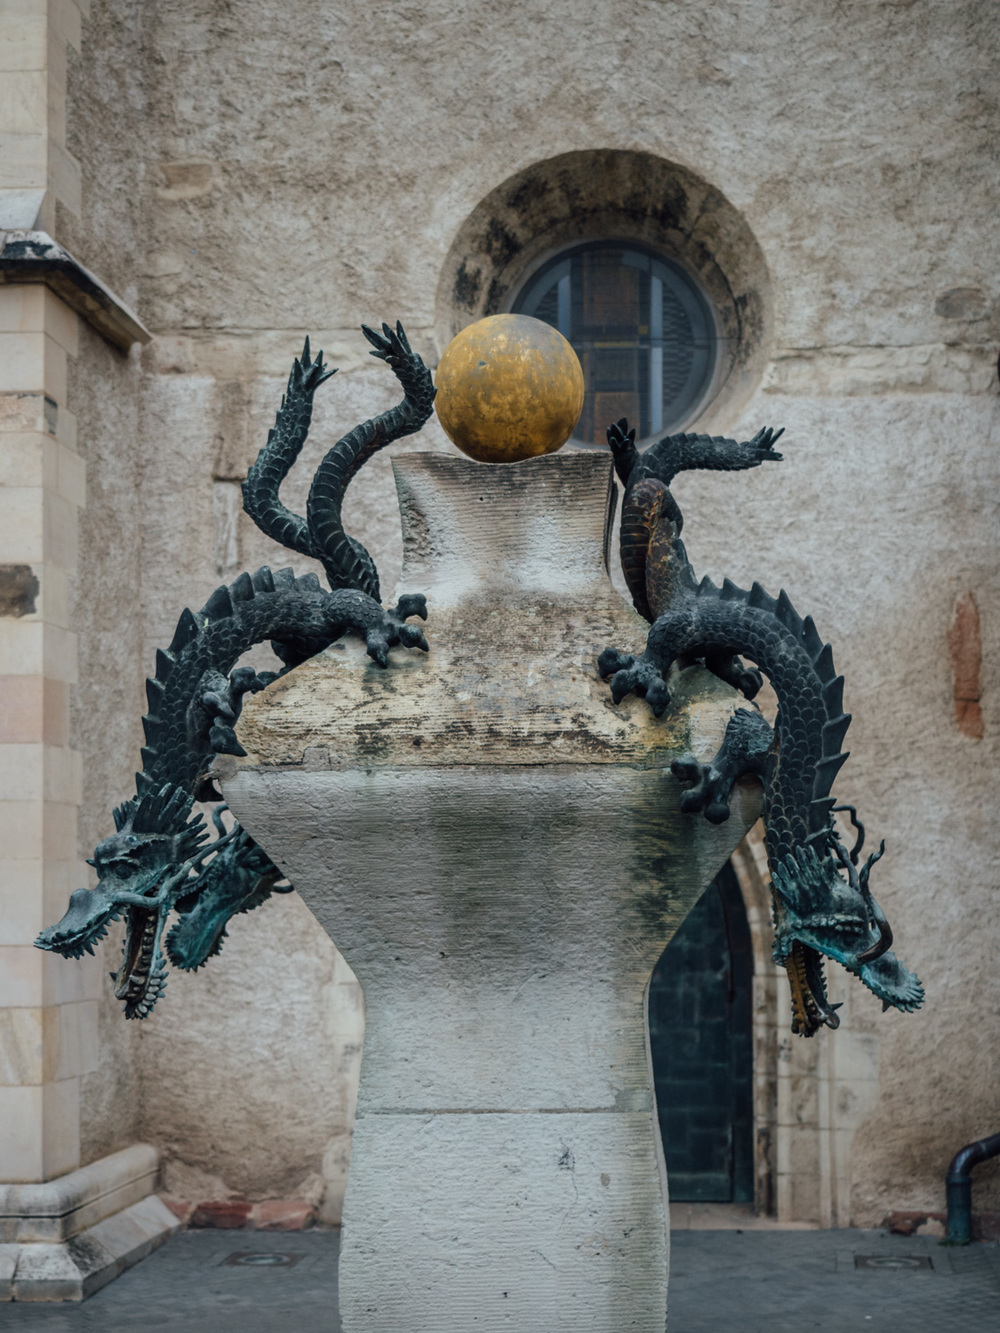 Dragon sculpture in front of the church